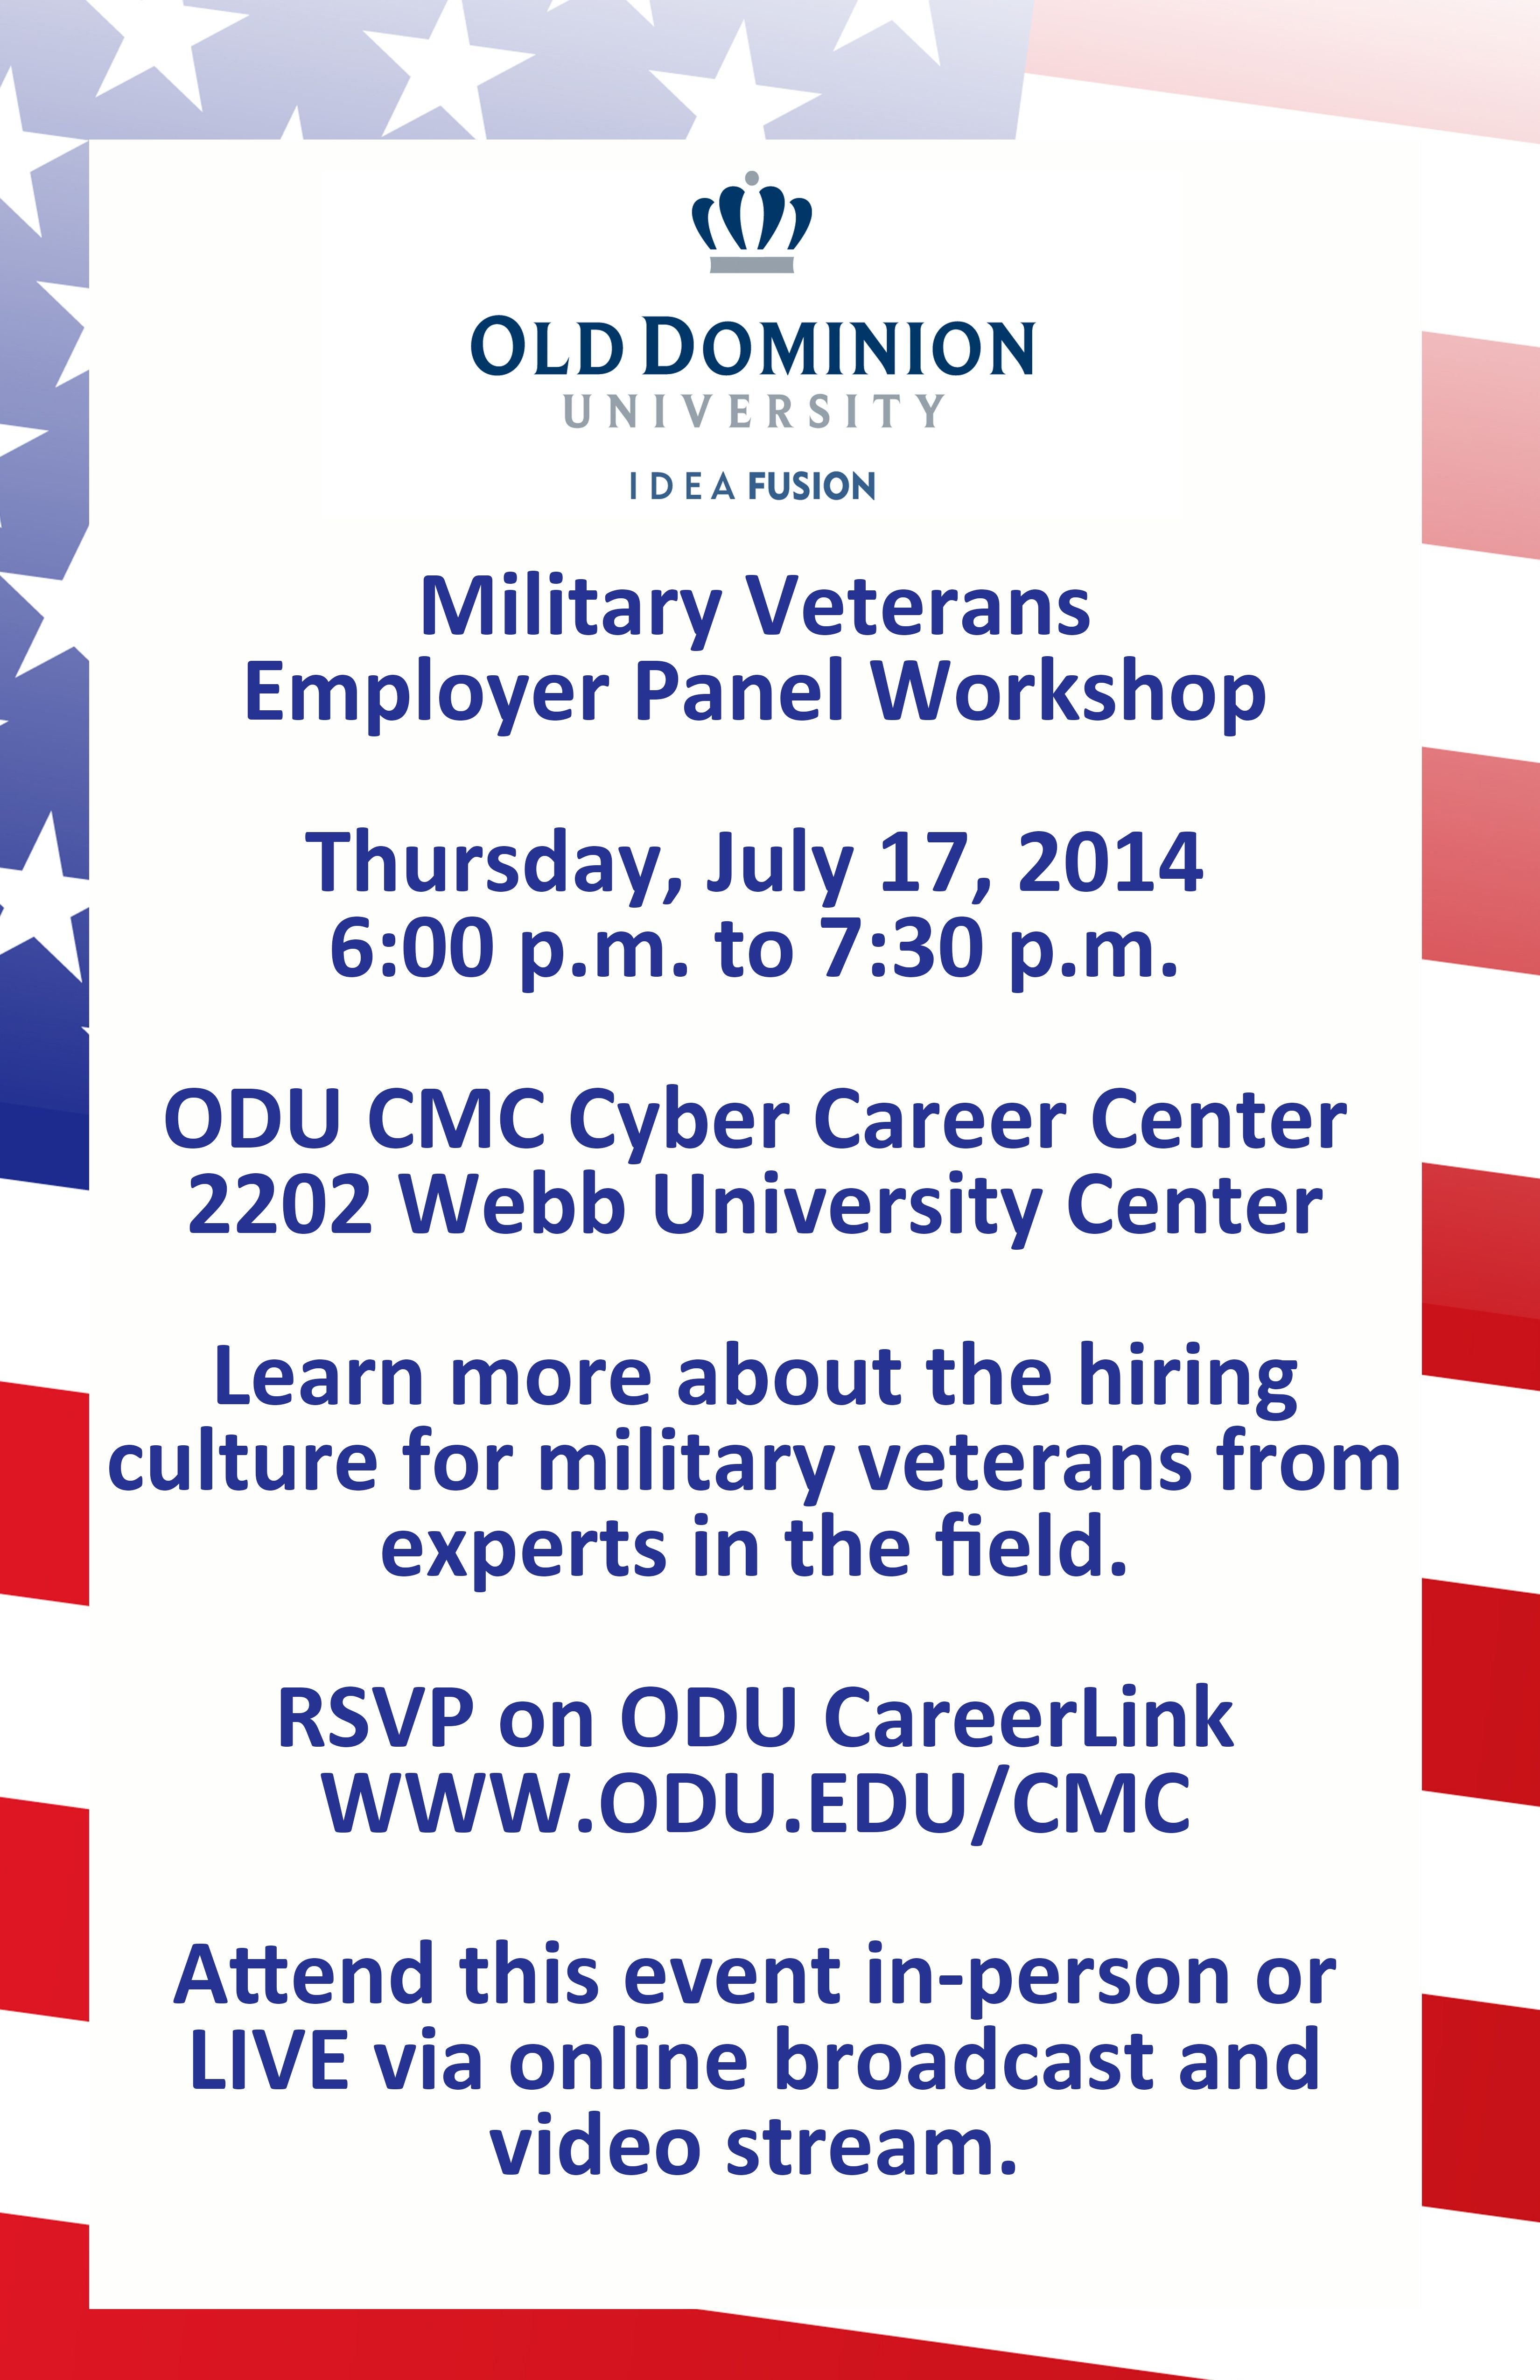 Attention military veterans! Attend the employer panel